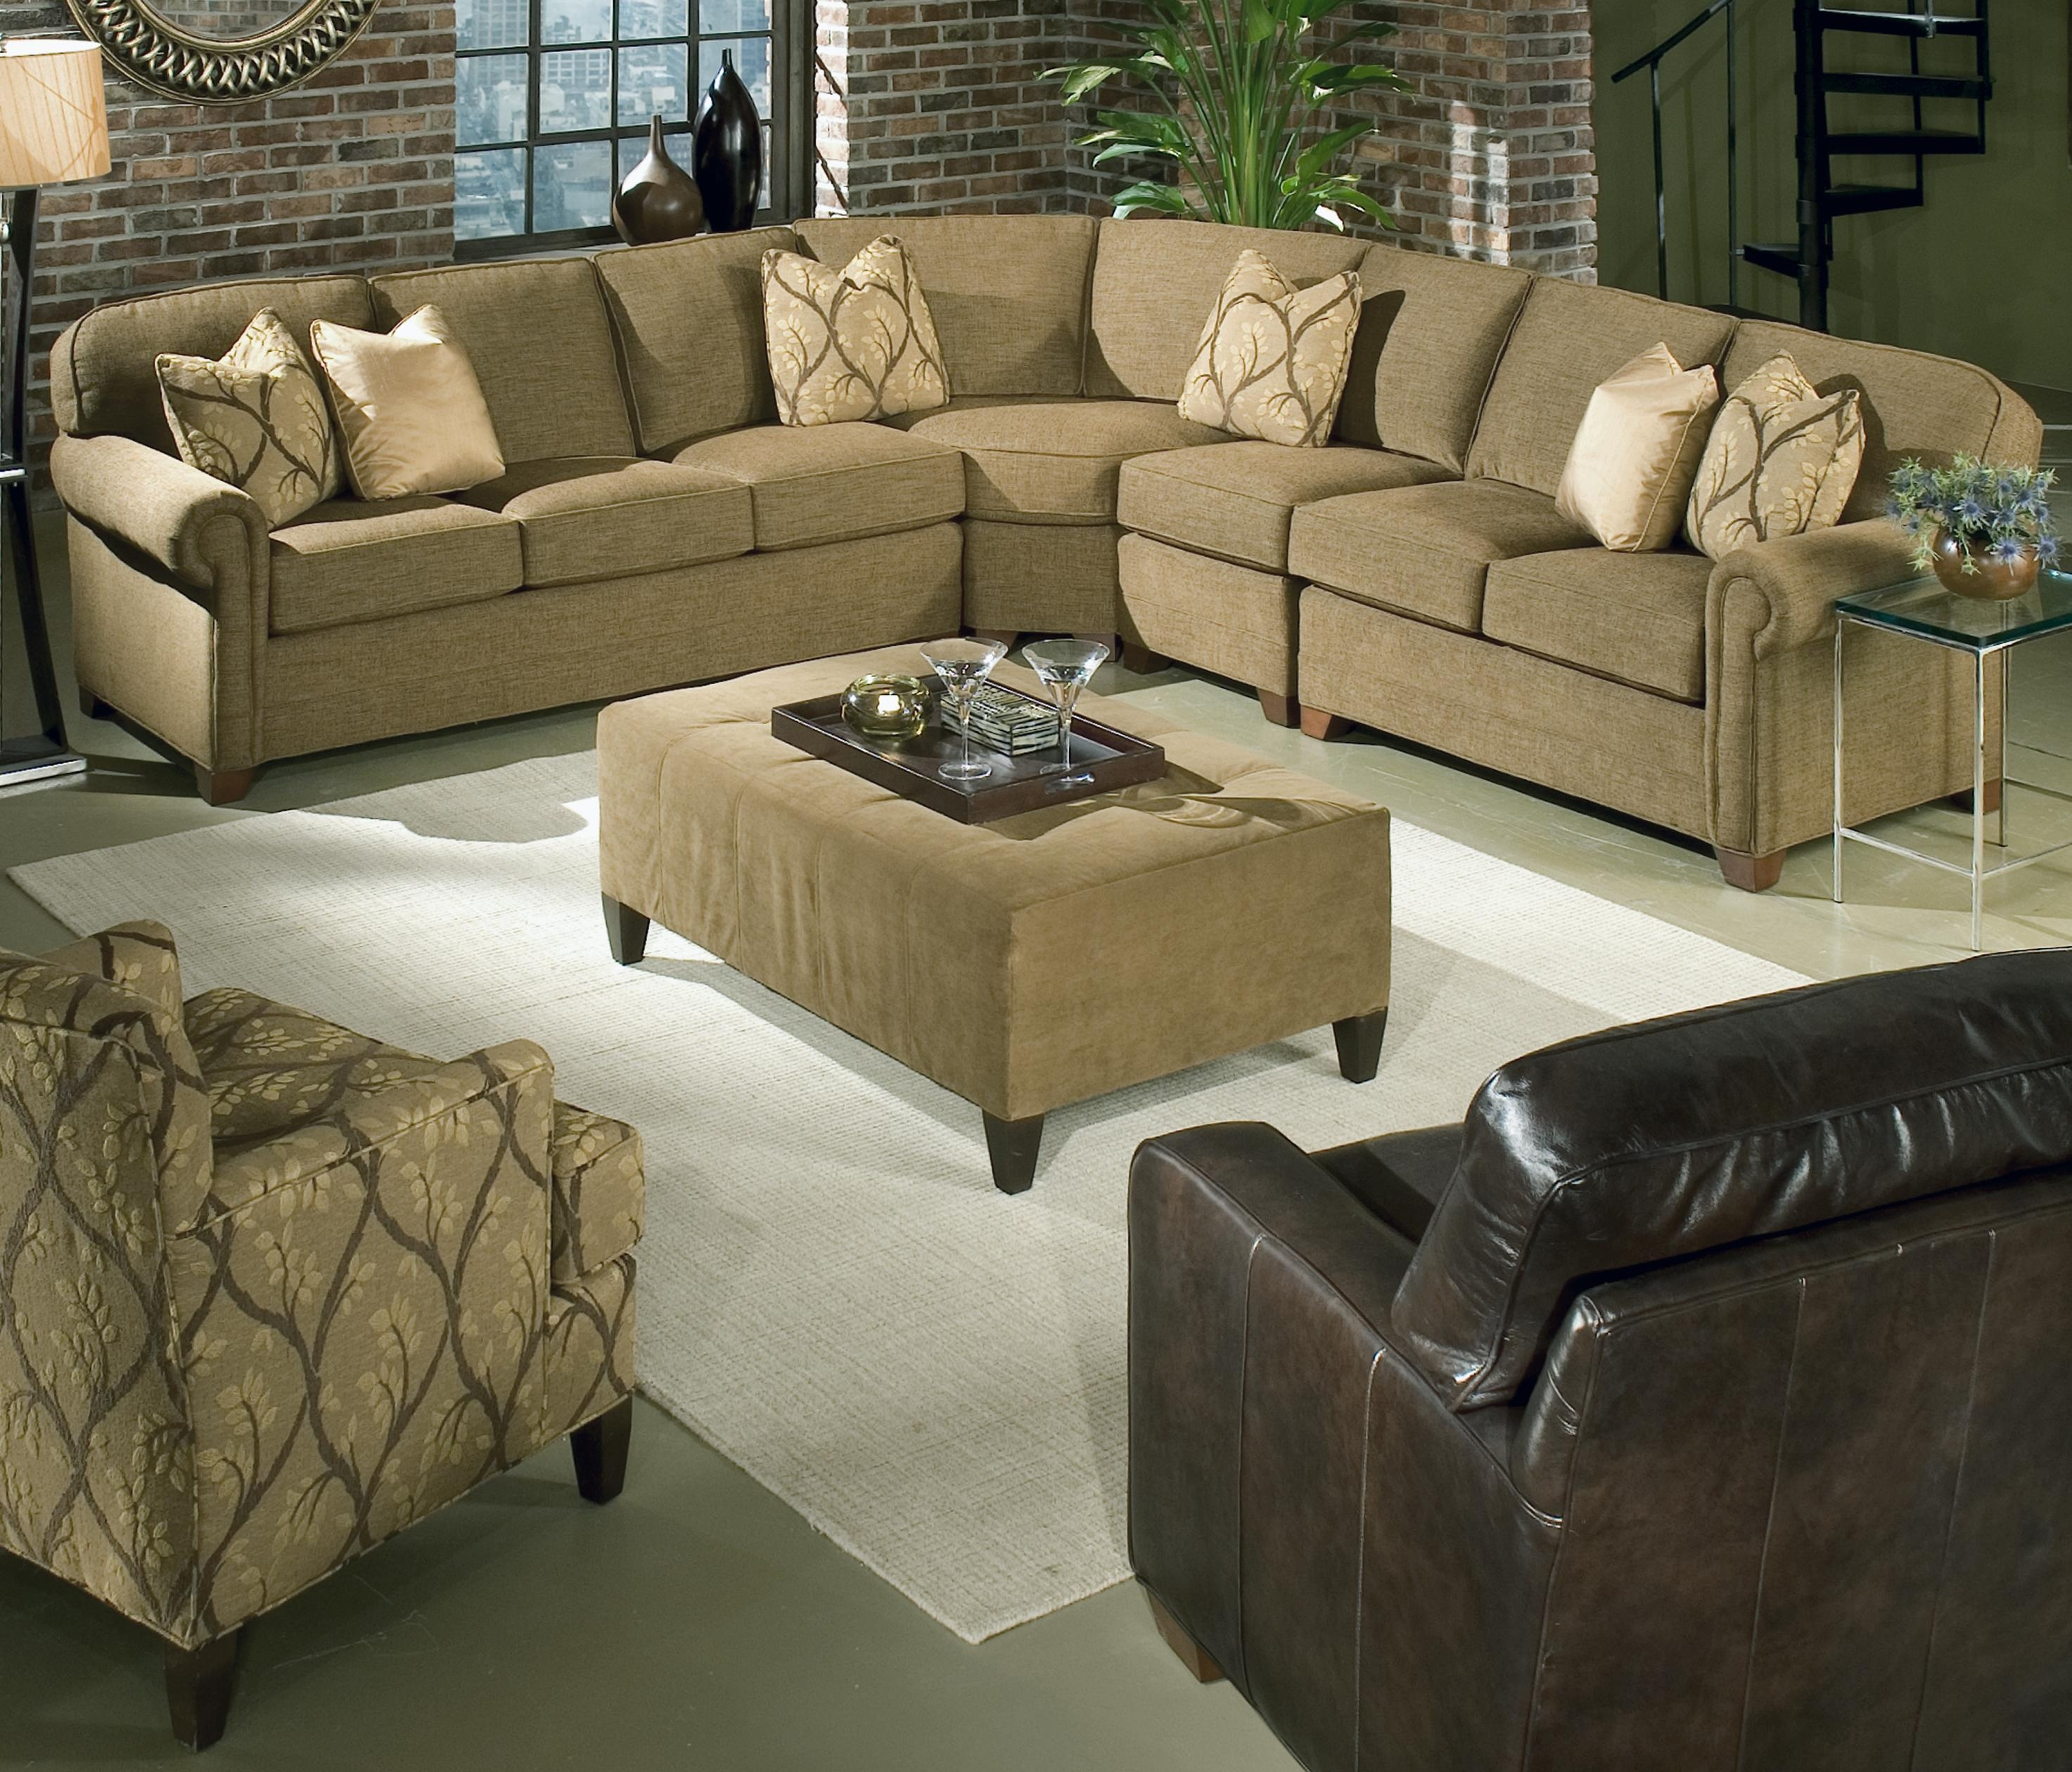 Inspirational Customizable Sectional Sofa 19 For Down Feather For Down Feather Sectional Sofa (Image 6 of 15)